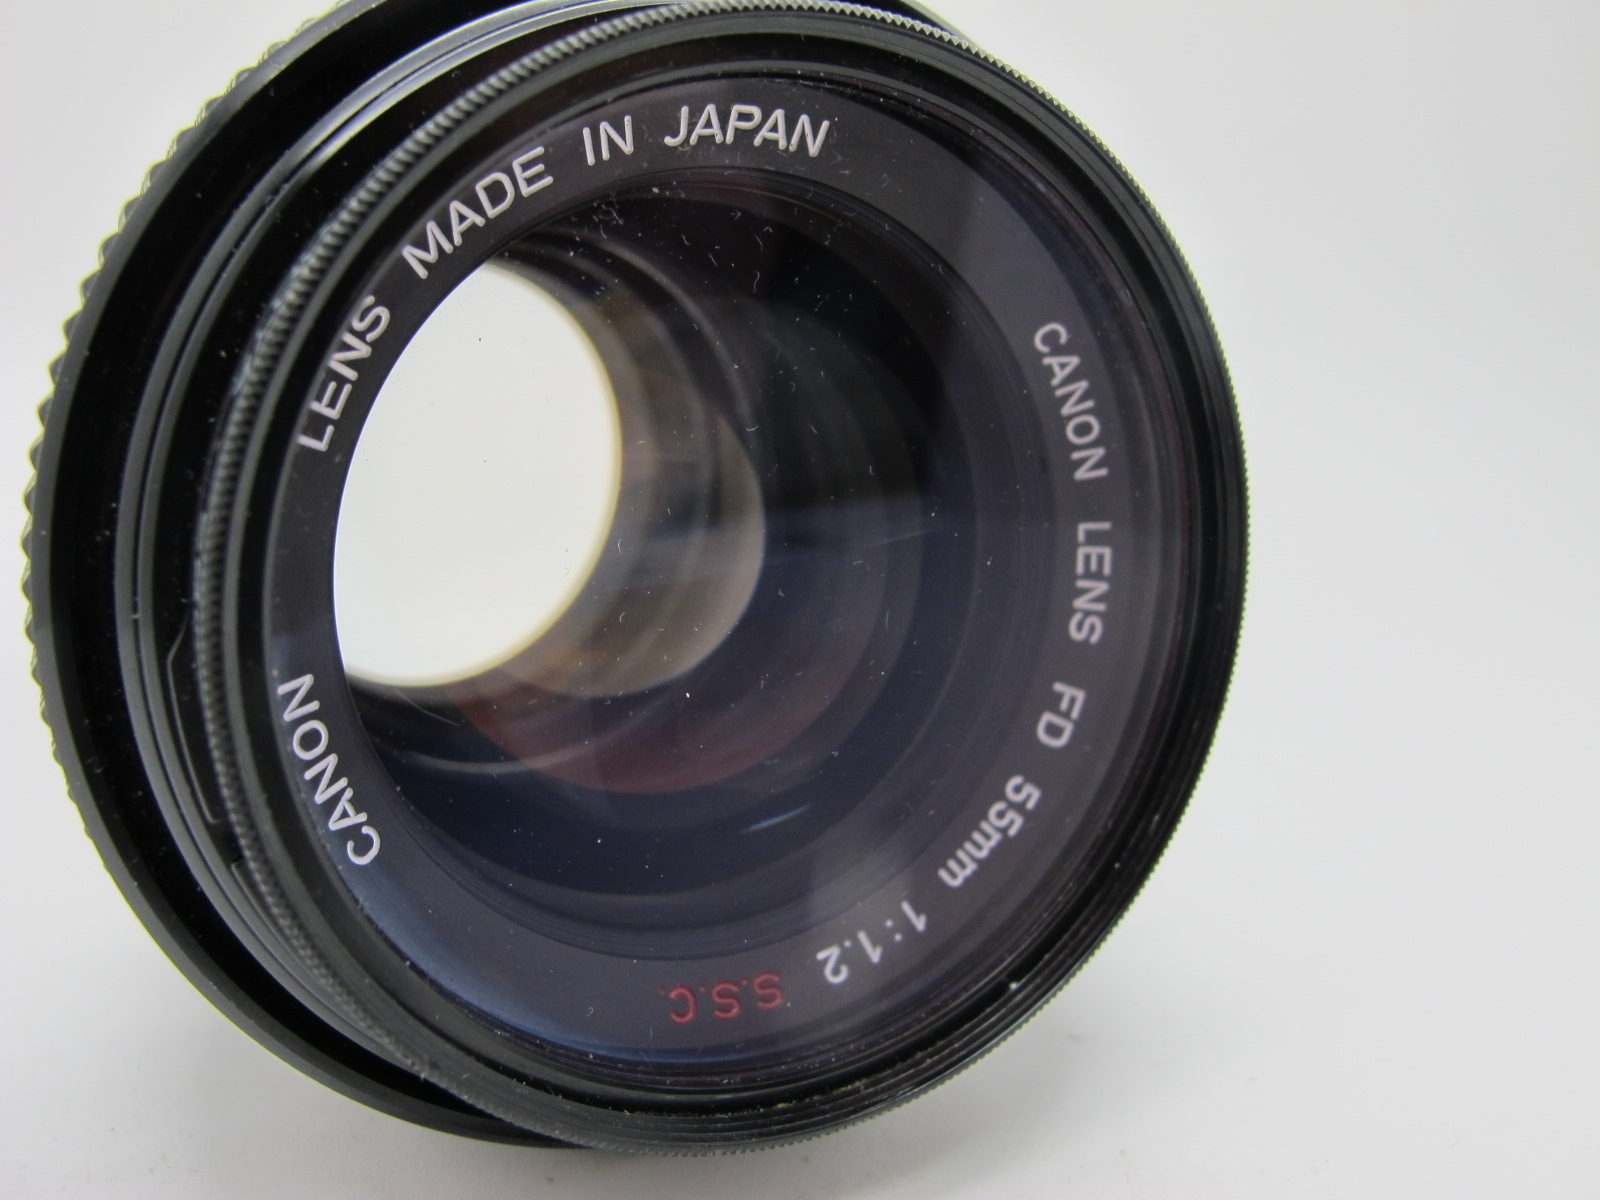 Canon Lens, FD 55mm 1:12 S.S.C. lens, in canvas case. - Image 2 of 6